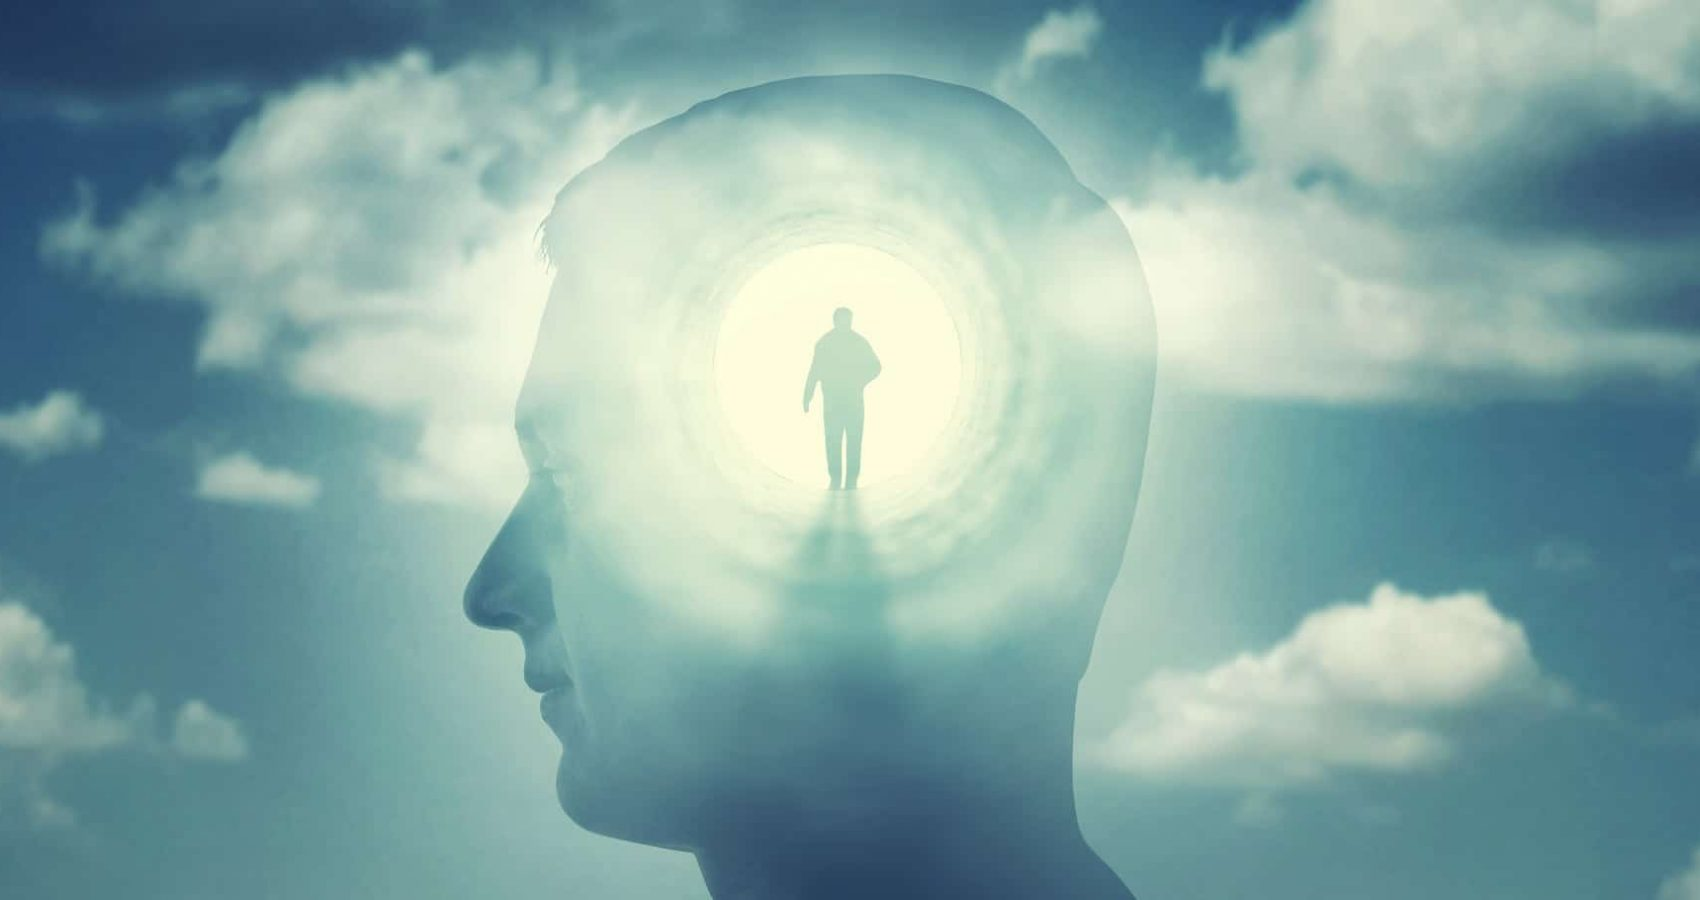 A silhouete of a man with rays of light emanating from the brain as a symbol of the power of thinking. Concept on the topic of psychiatry (bipolar disorder, schizophrenia), psychology, religion, science, spiritual growth.